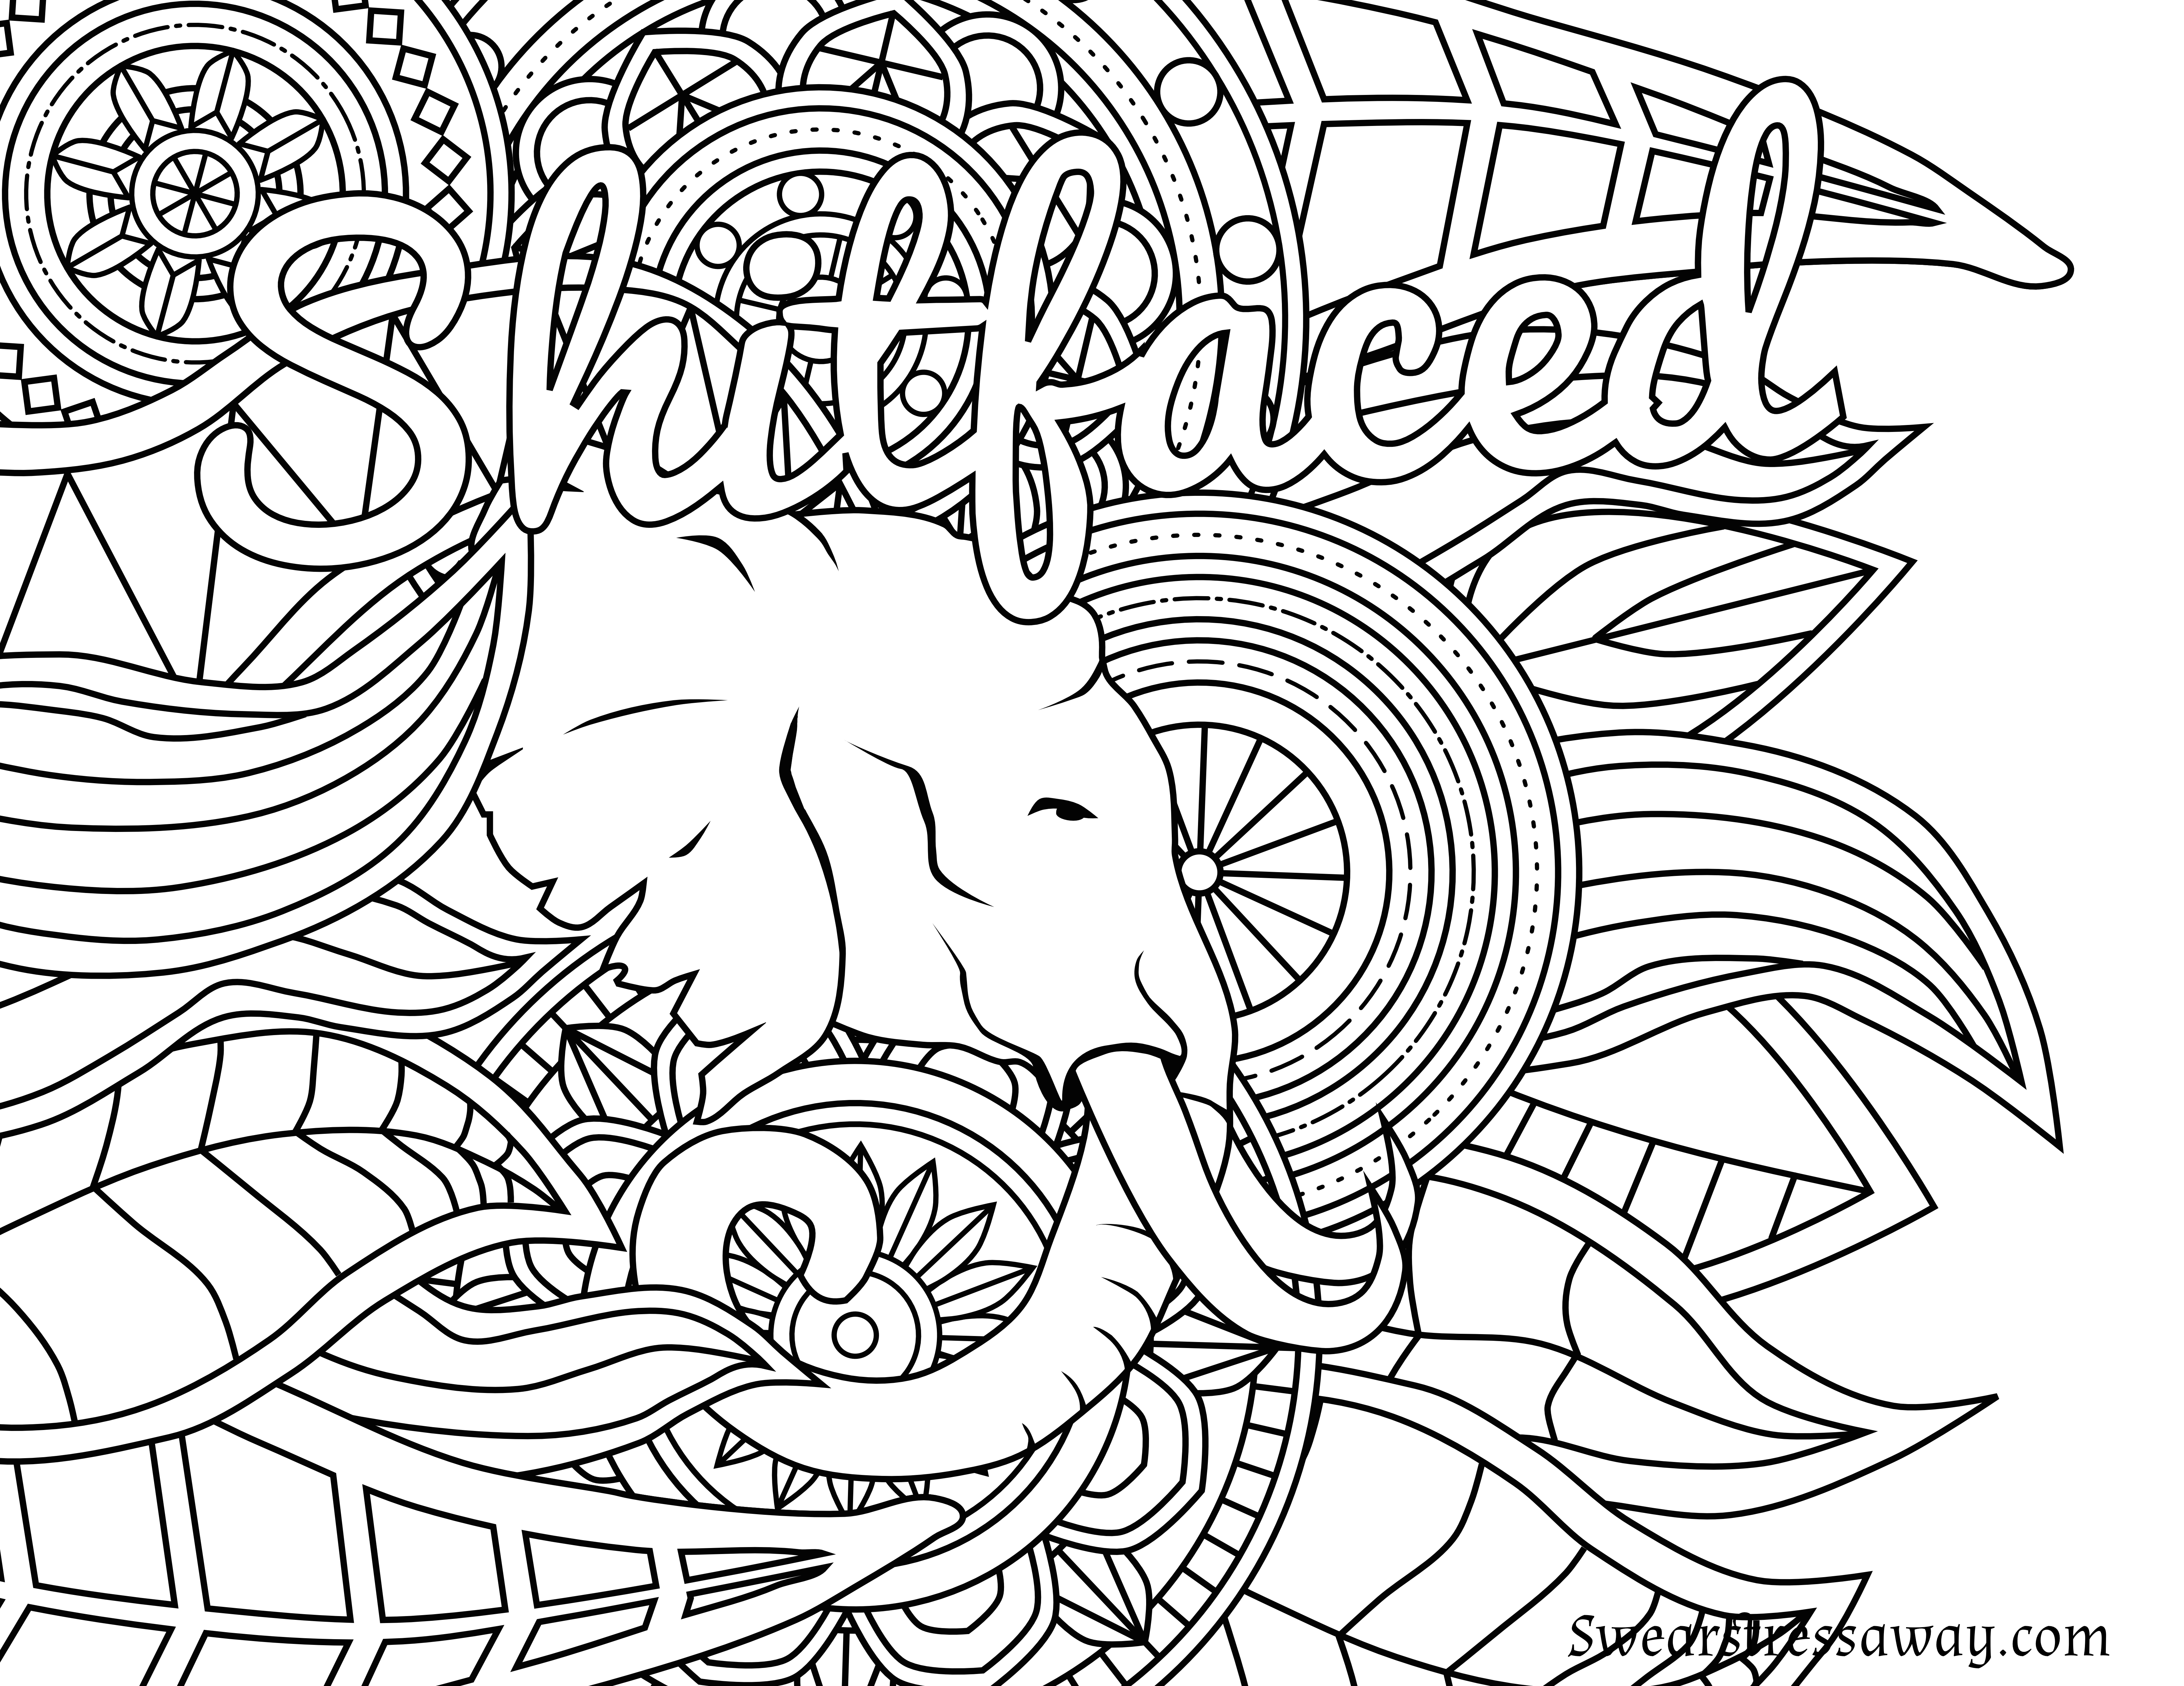 It is an image of Free Printable Cuss Word Coloring Pages in religious word